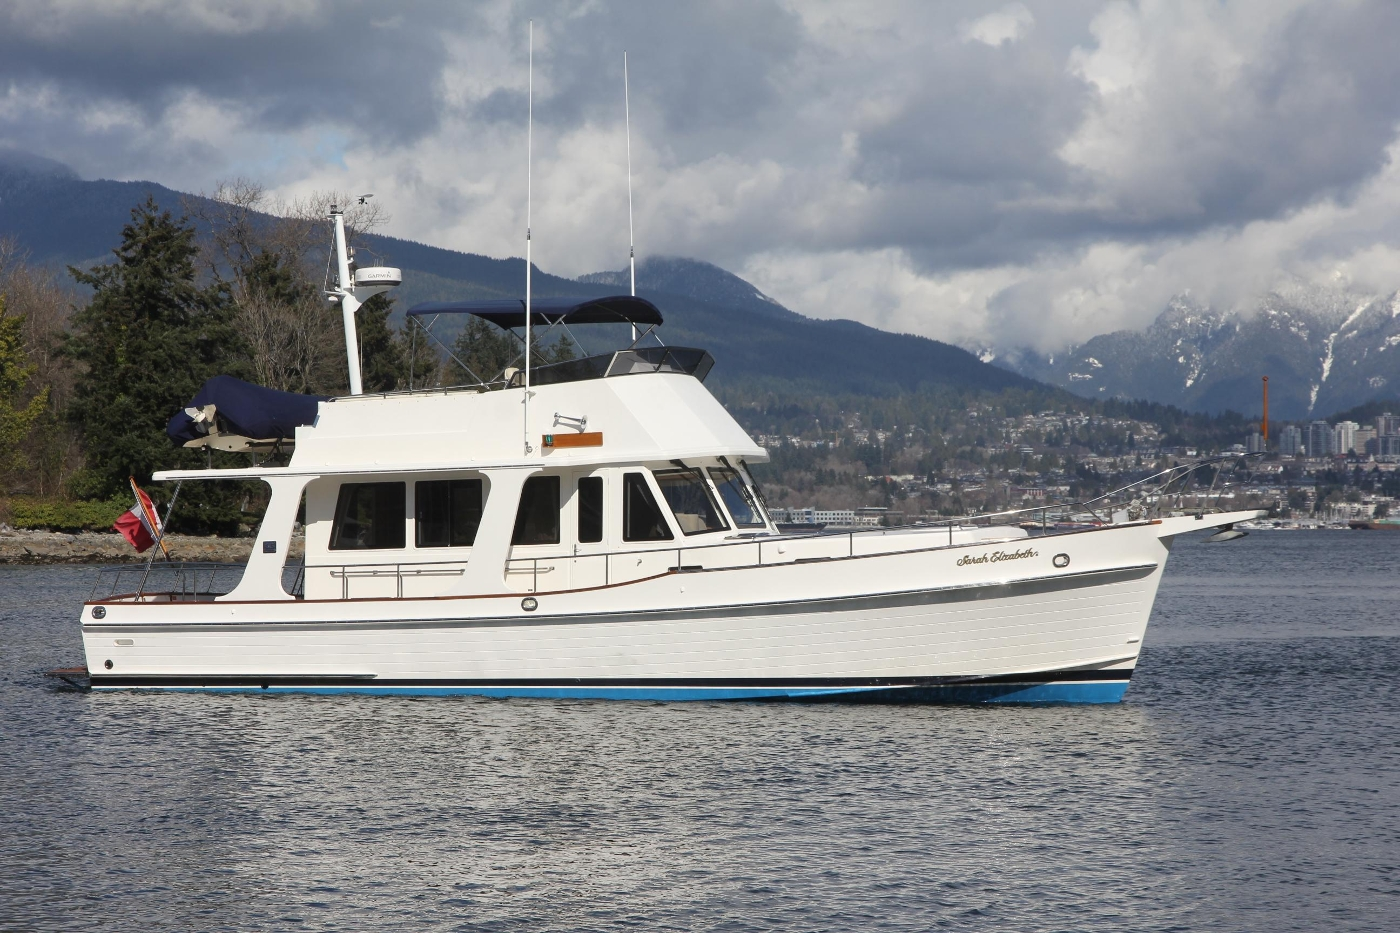 2009 Grand Banks 47 Europa, Profile Underway